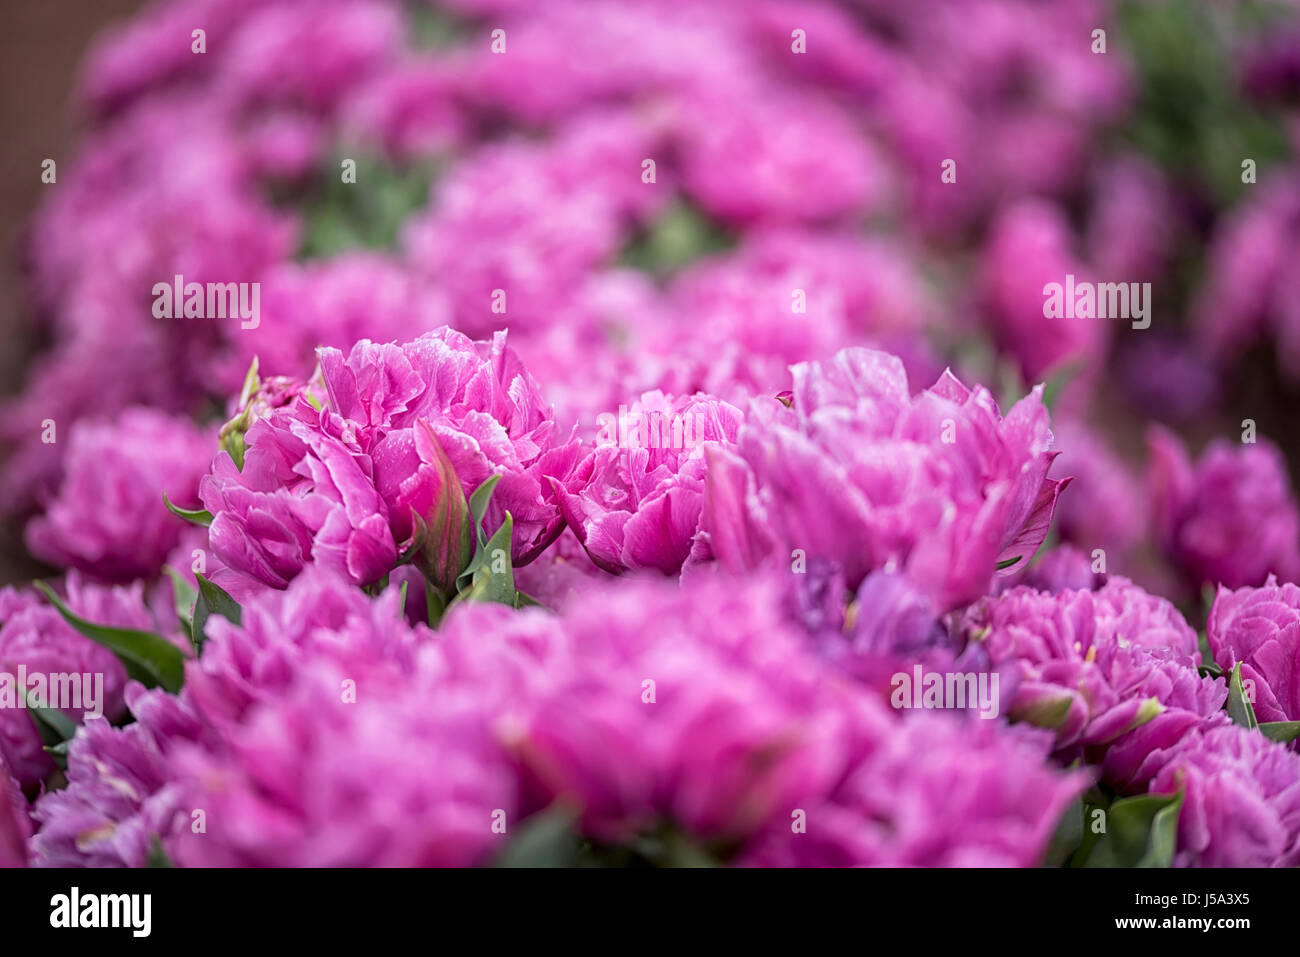 Close-up of a long bed bright purple magenta colored carnations - Stock Image